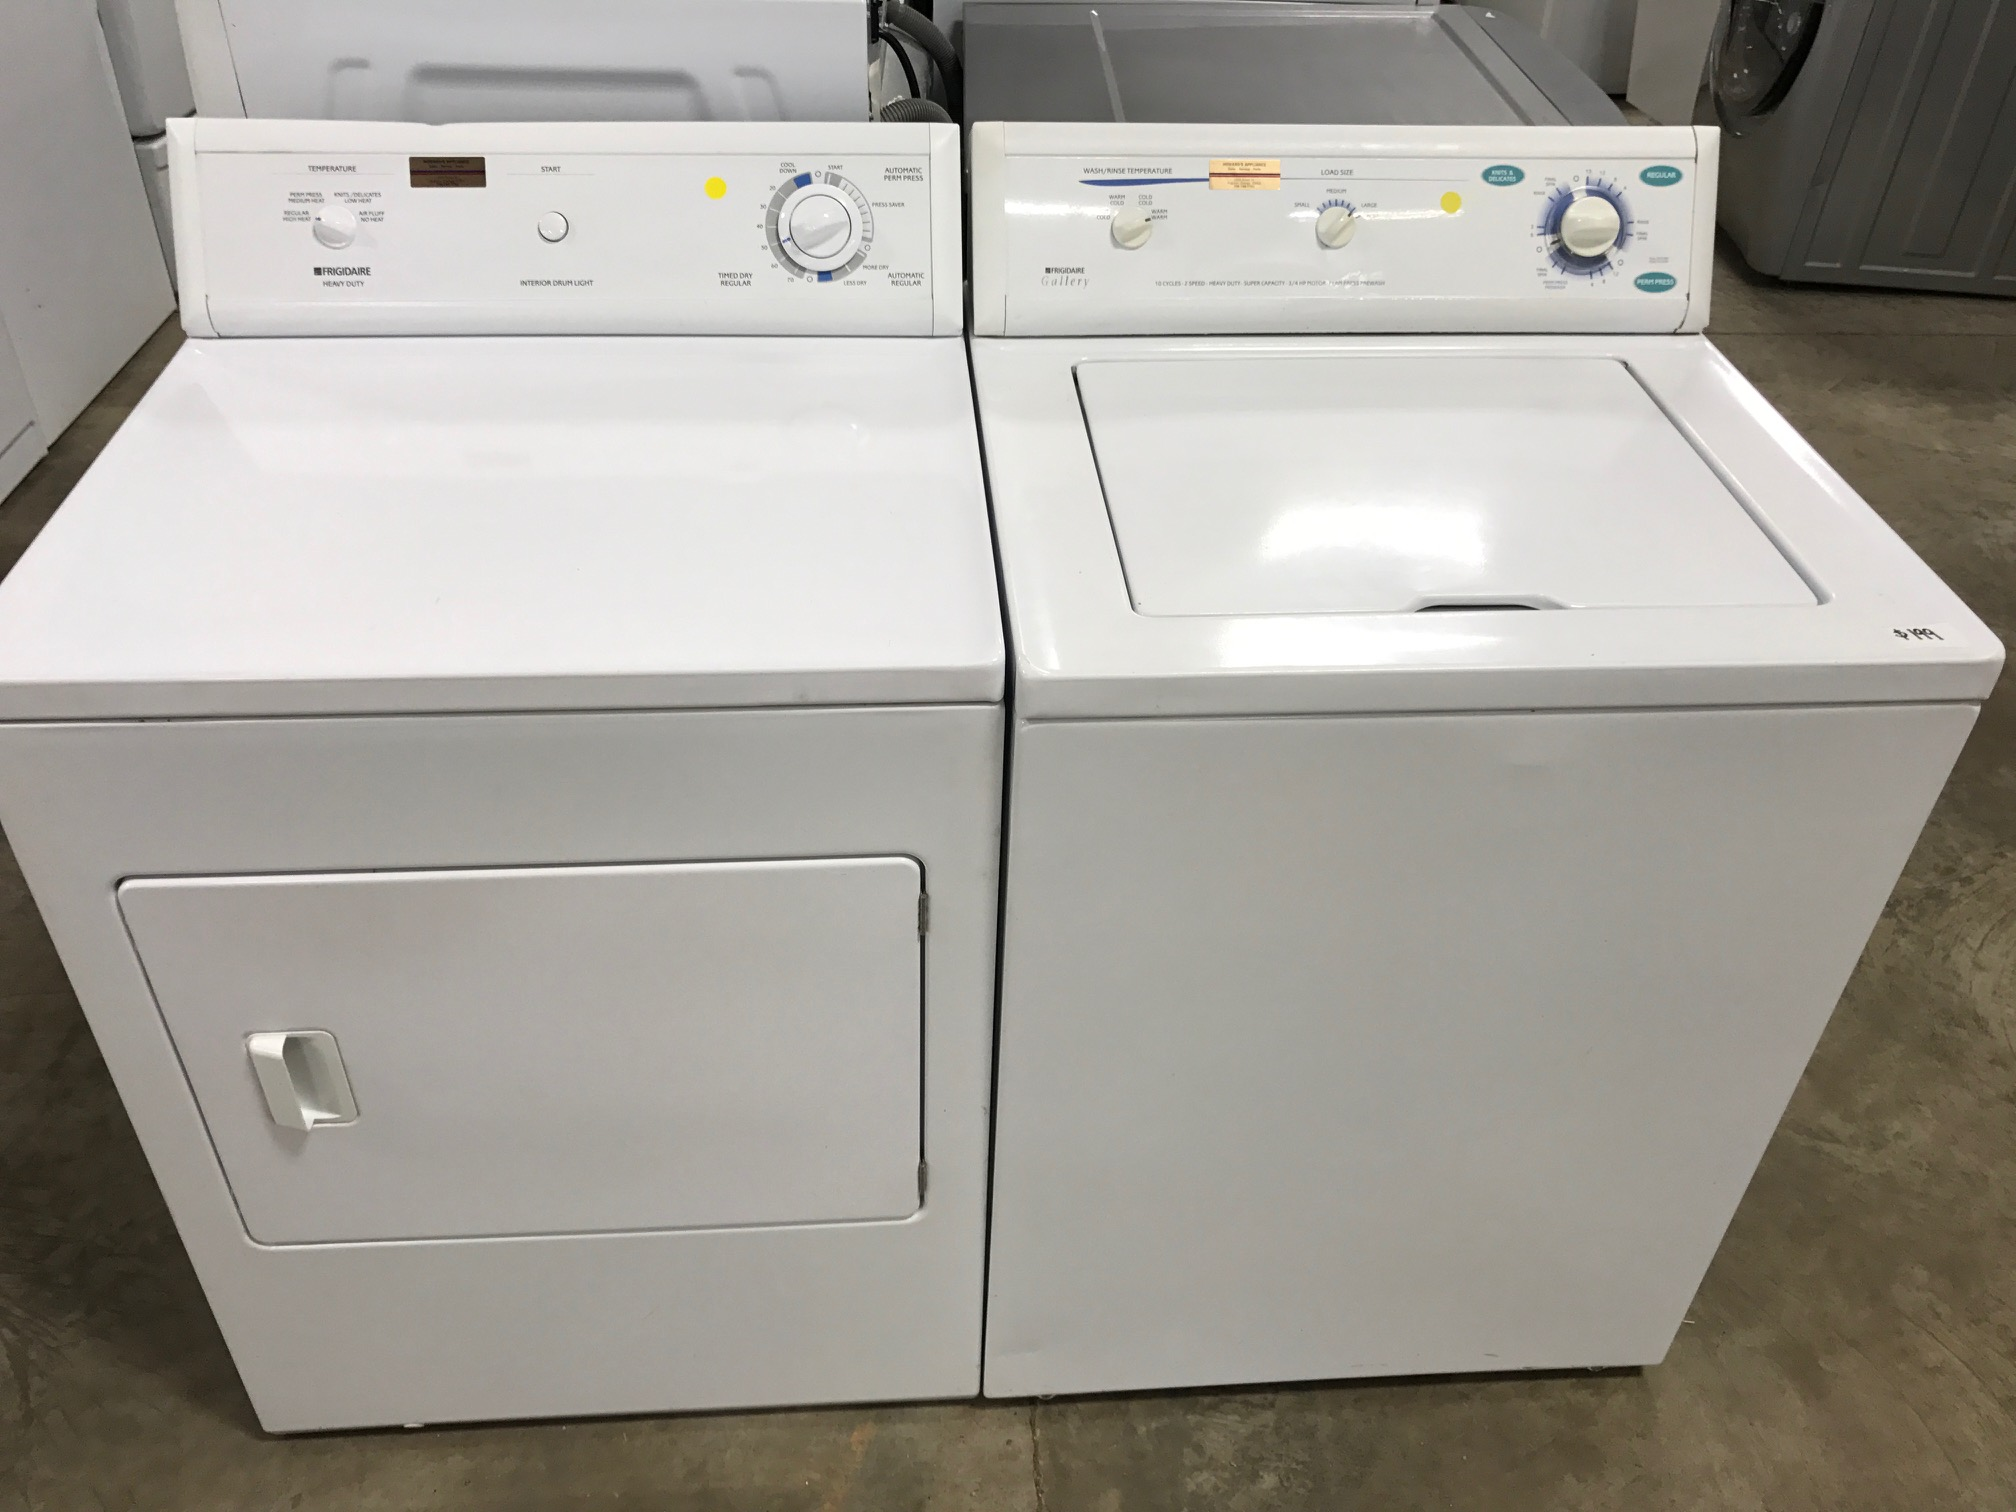 refurbished washer and dryer Frigidaire set with parts and labor warranty